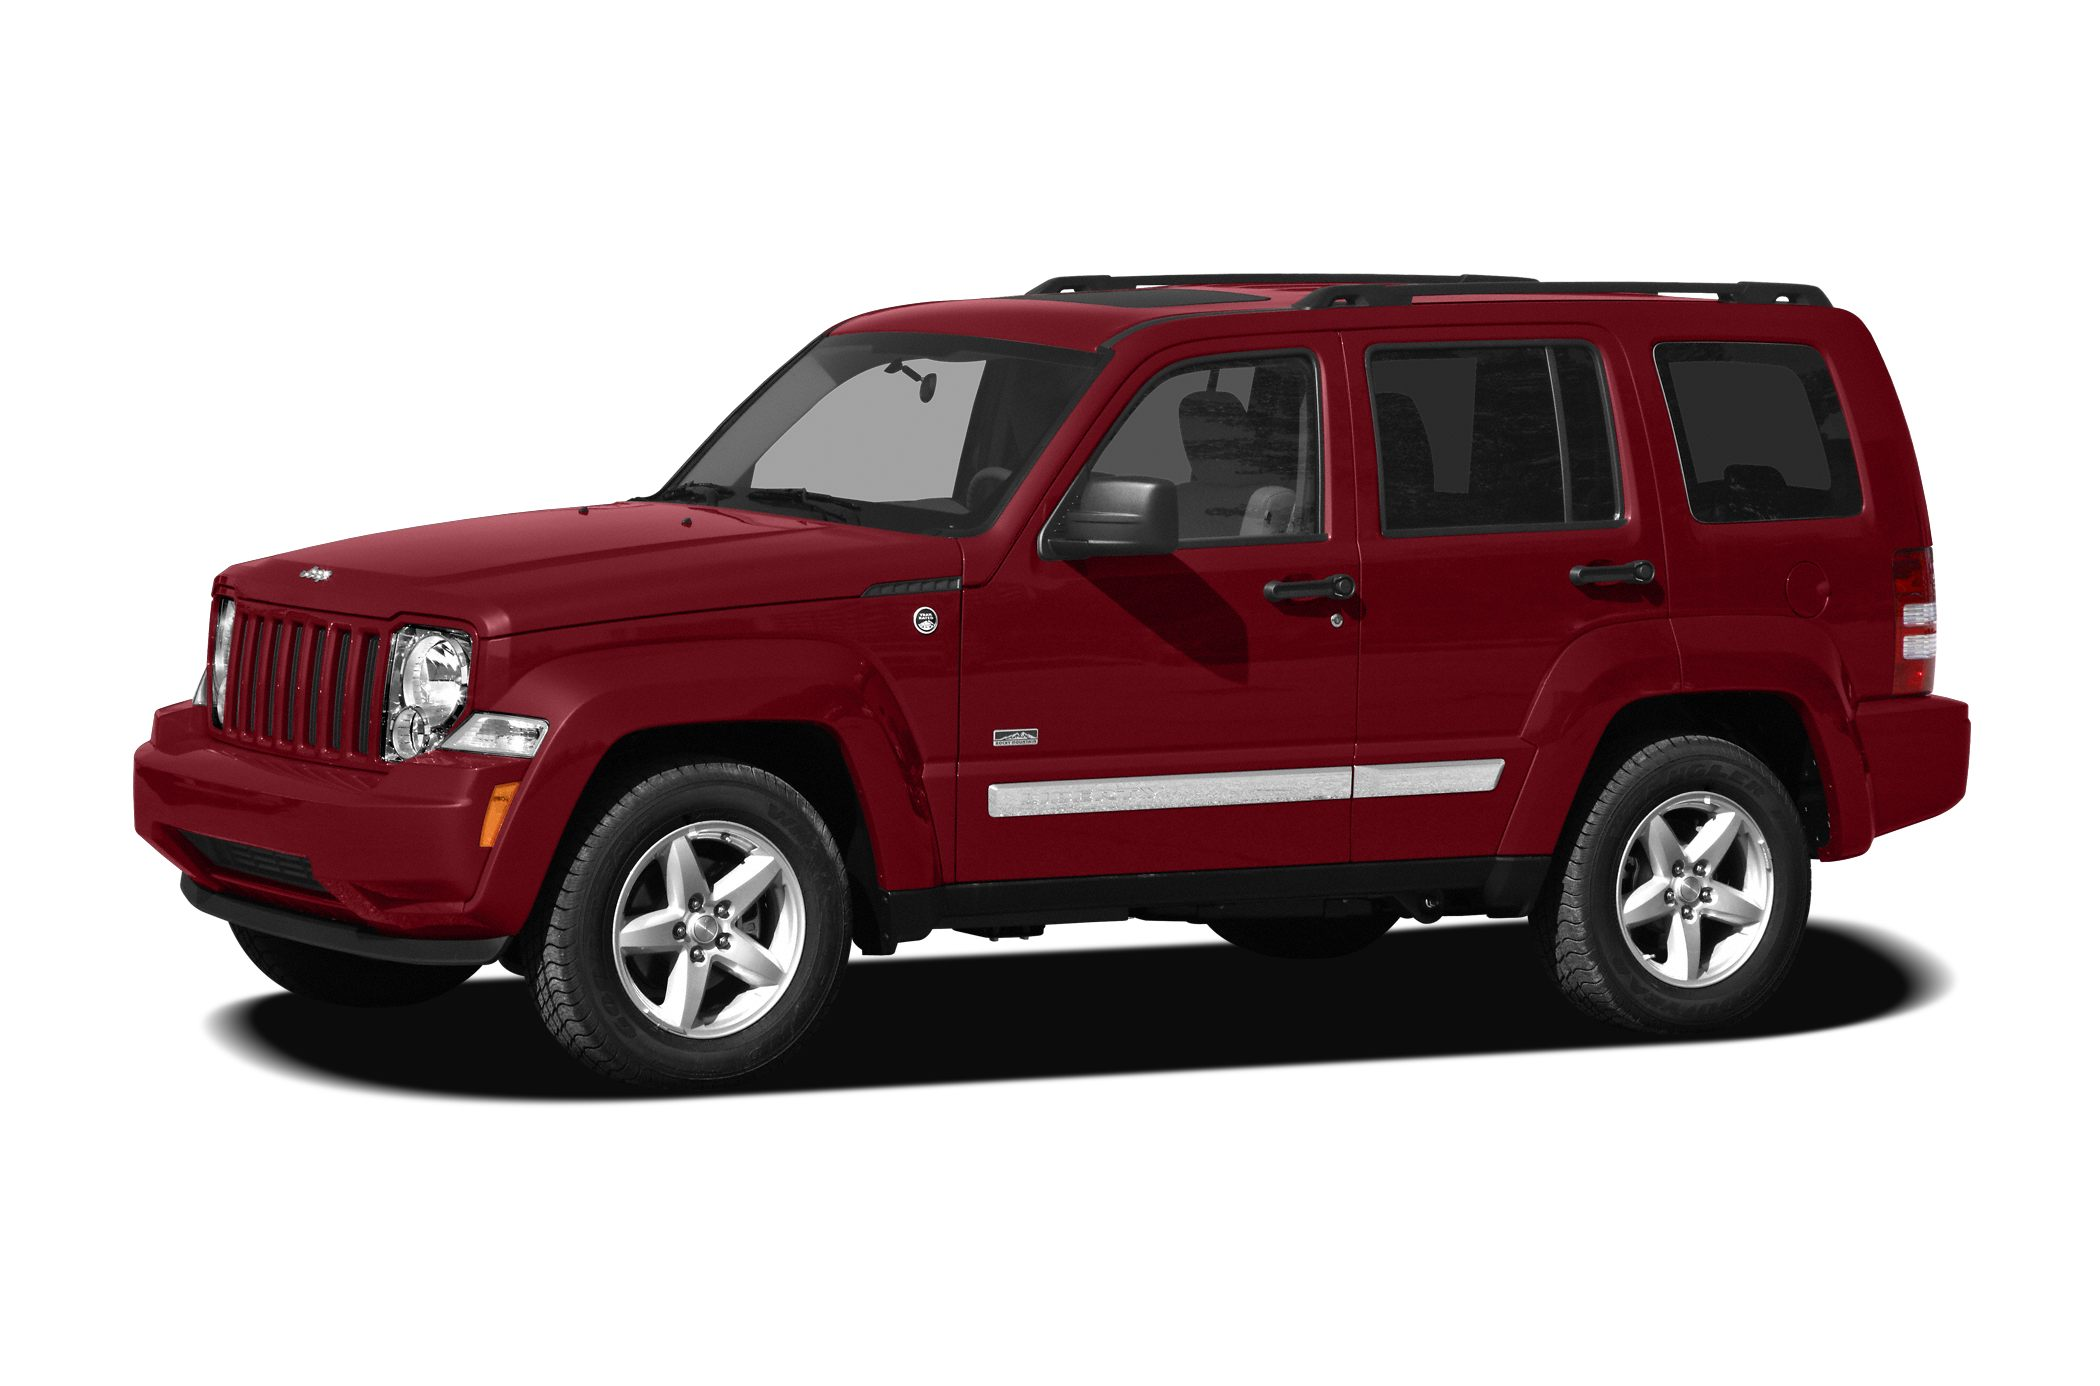 2012JeepLiberty